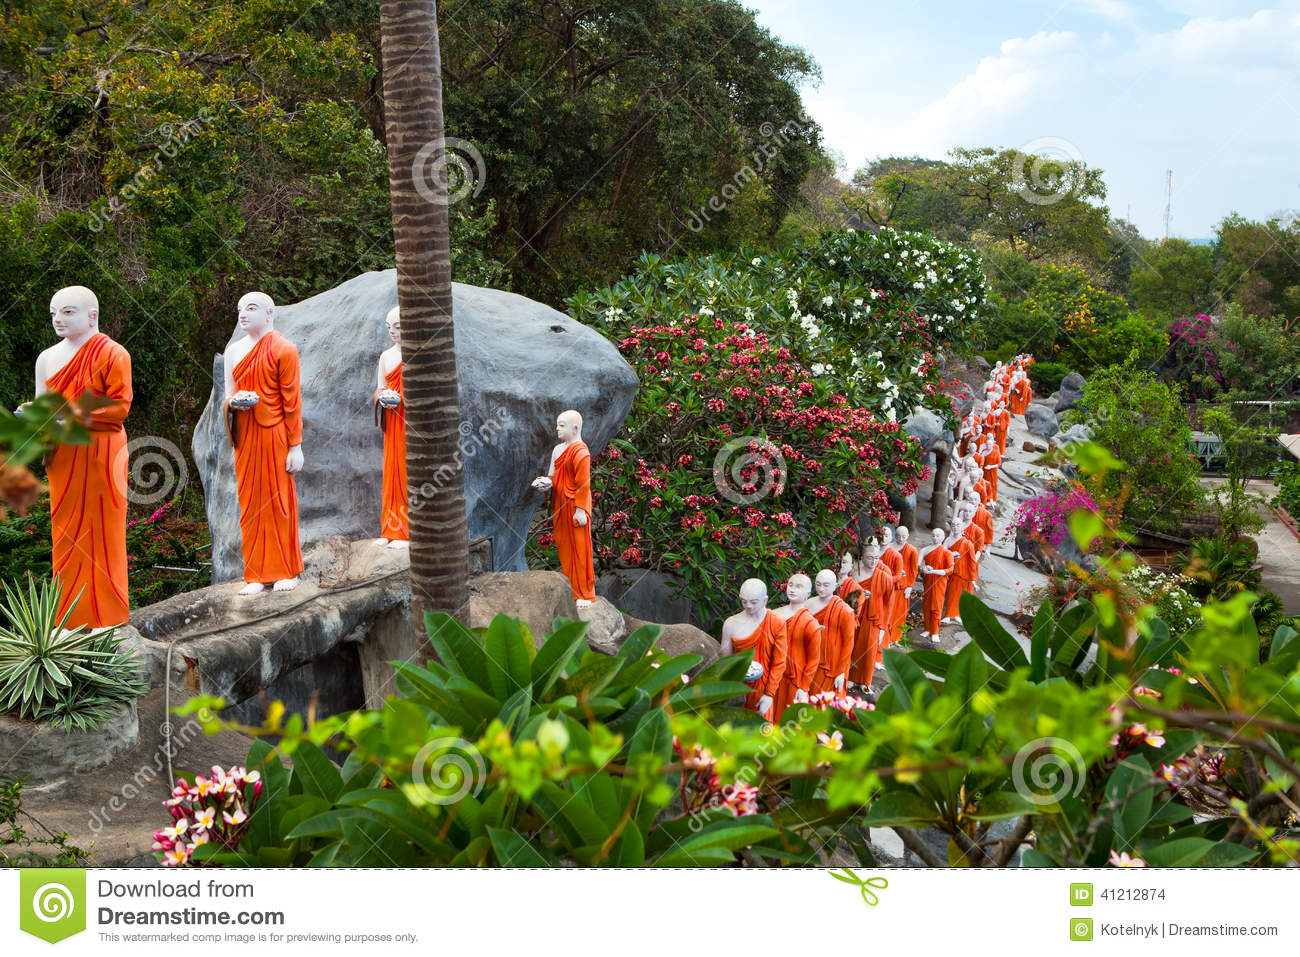 sri aman buddhist singles Find travel ideas for planning your holiday to sri lanka discover things to see and do, places to stay and more this is the official site of sri lanka tourism.